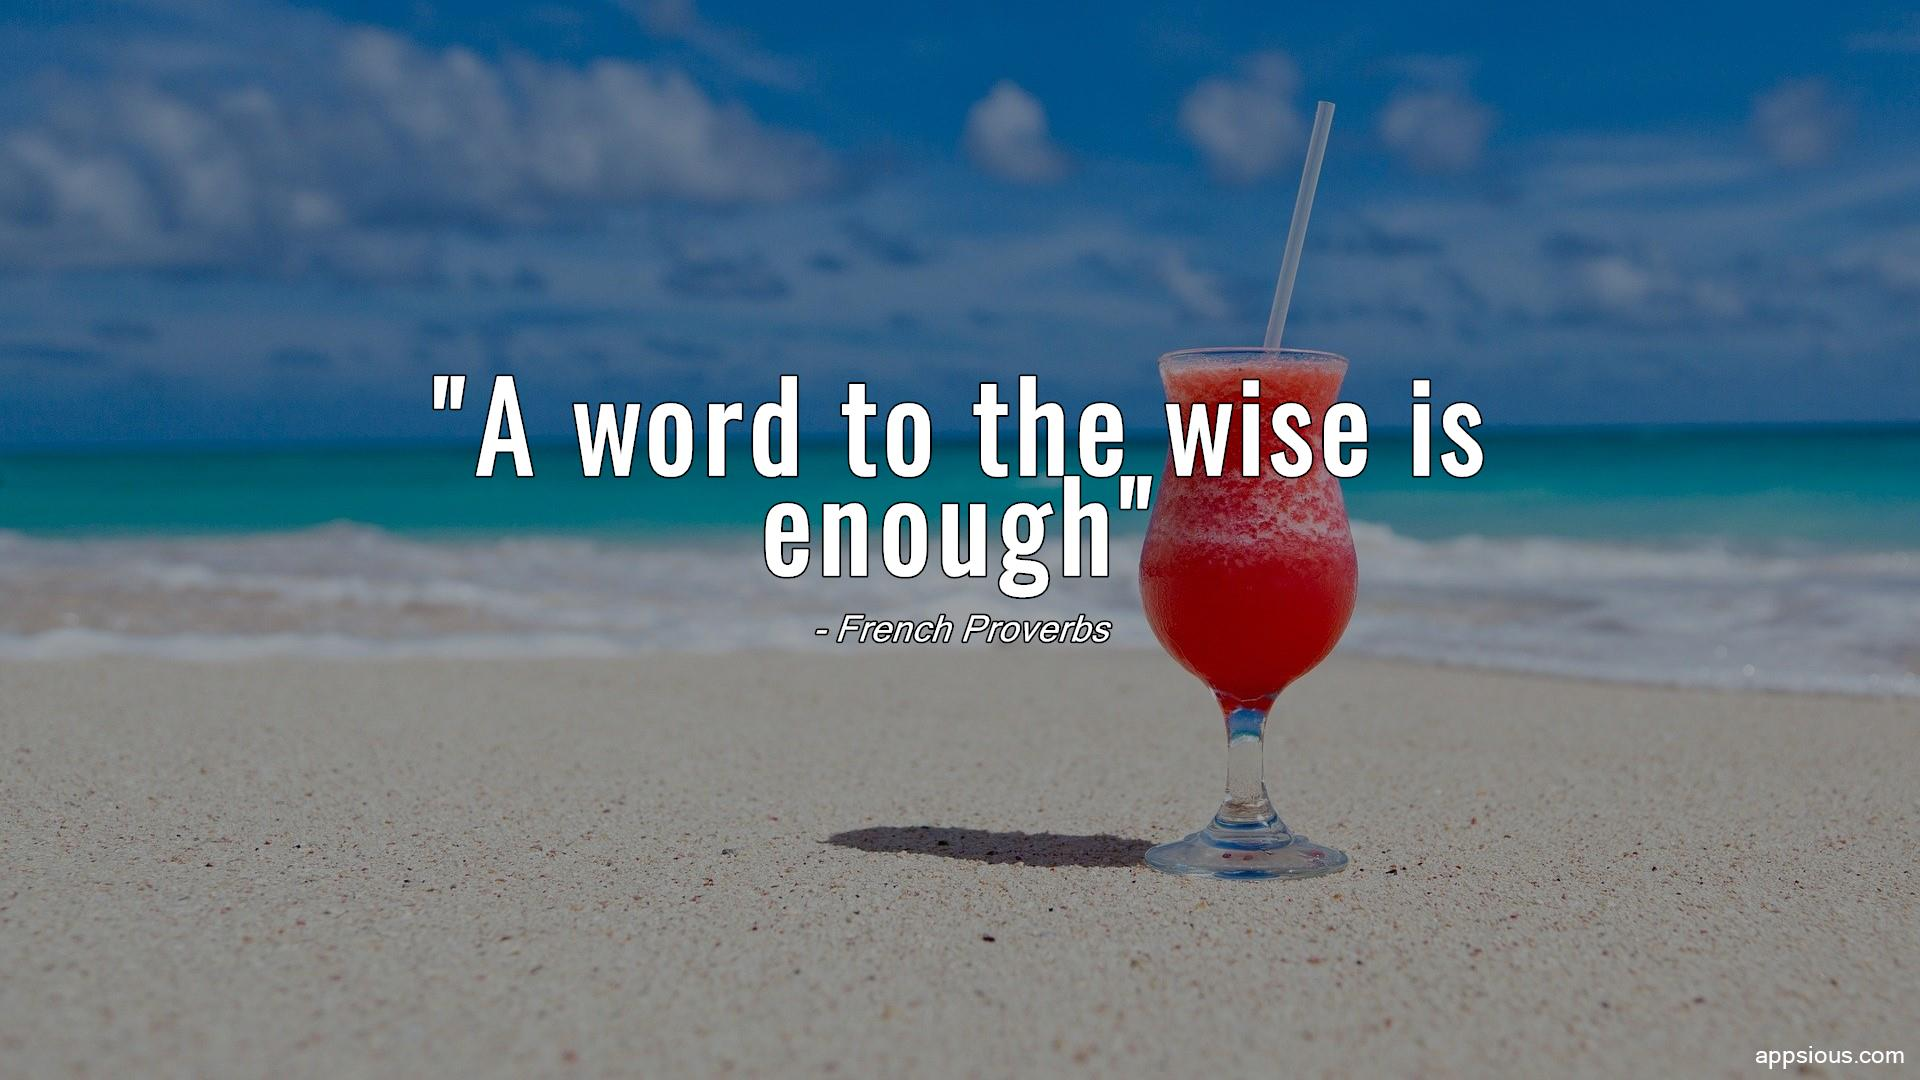 A word to the wise is enough